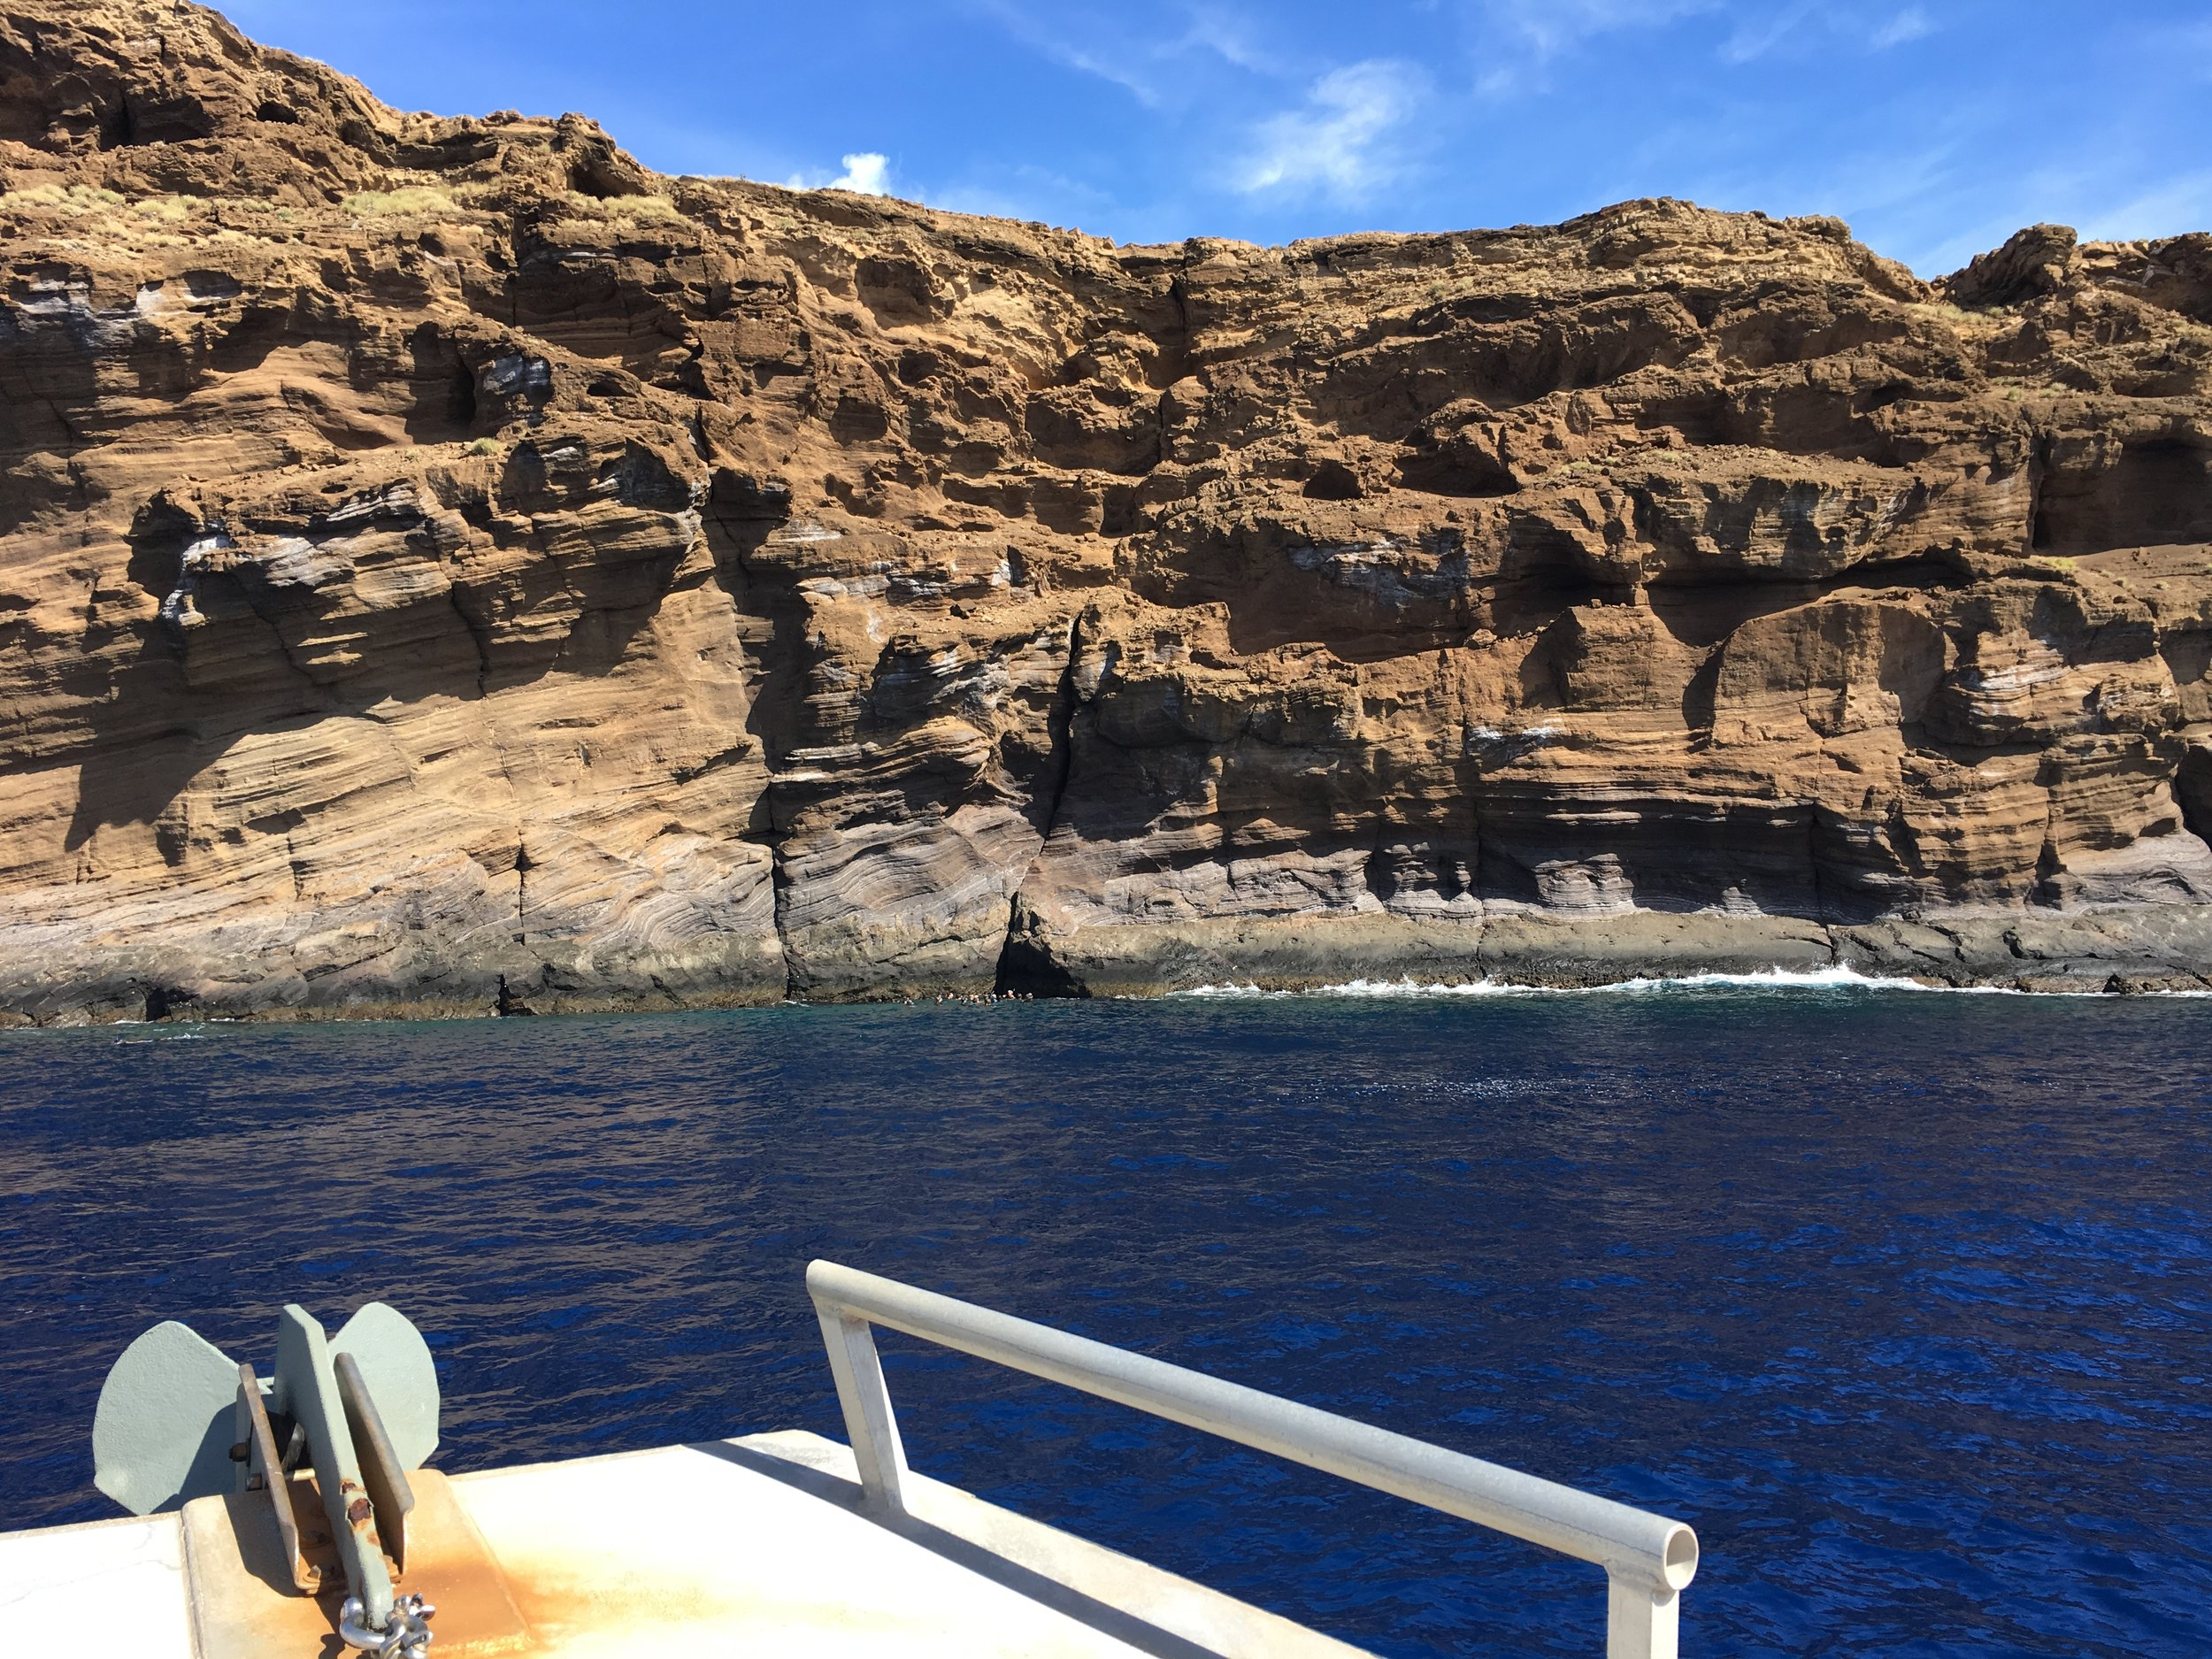 Back side of Molokini Crater. 300 feet deep for those brave enough to explore (of course Jason was out there).